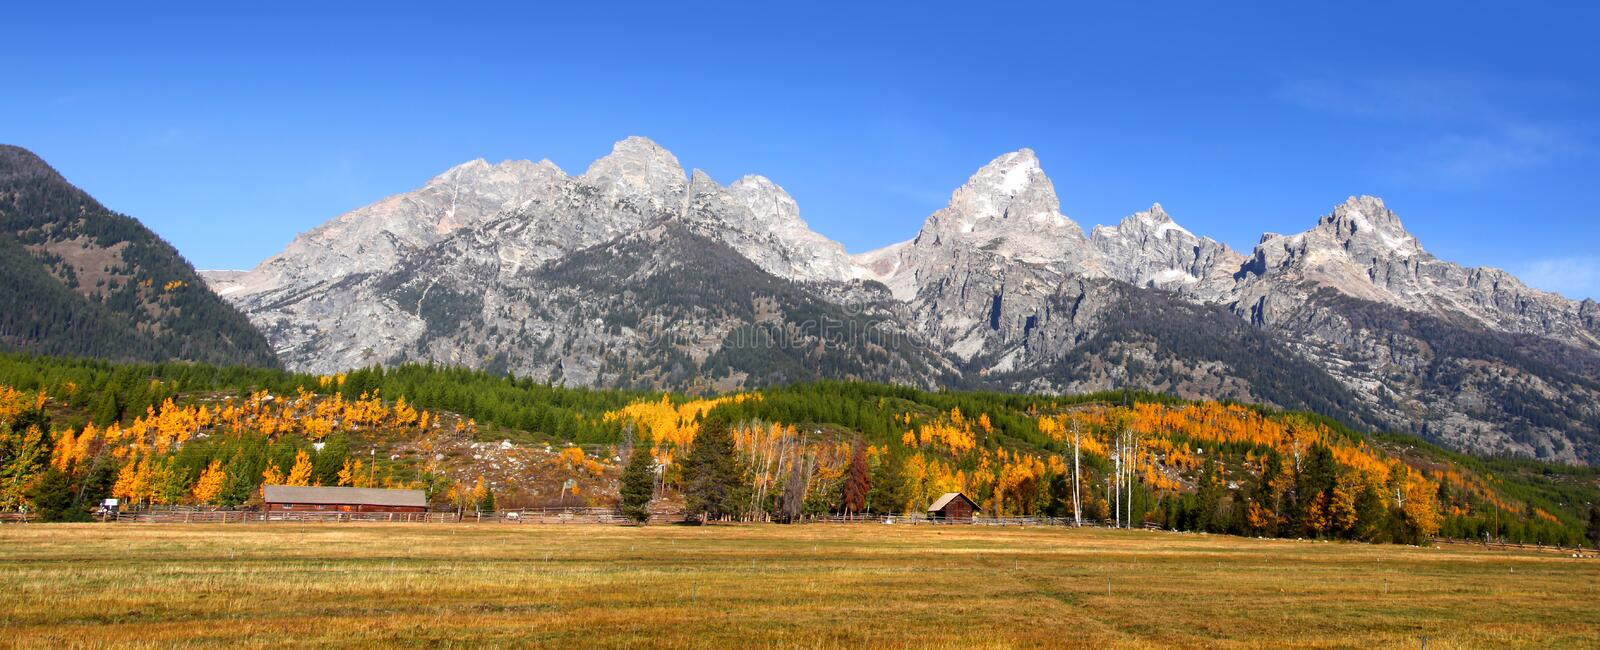 Grand Tetons panorama royalty free stock photography